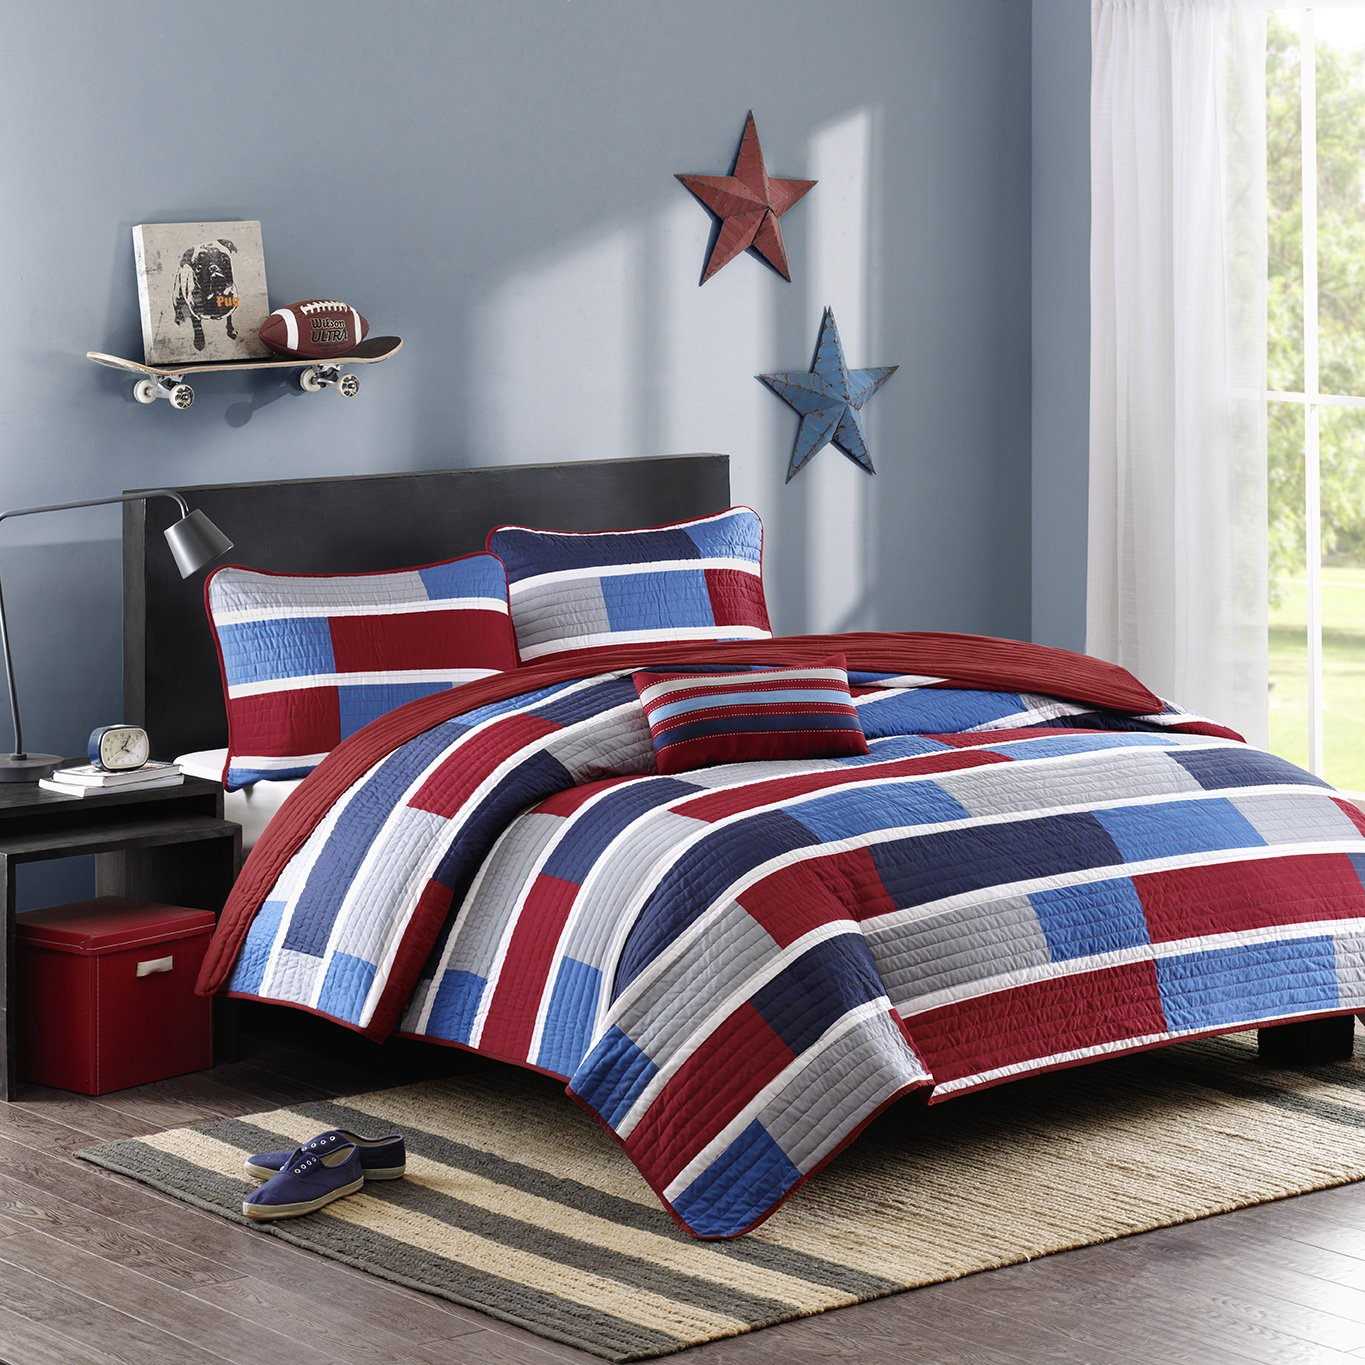 Amazon.com: Mi Zone - Bradley Quilt Coverlet Set - Colorblocks Of ... : red and grey quilt - Adamdwight.com